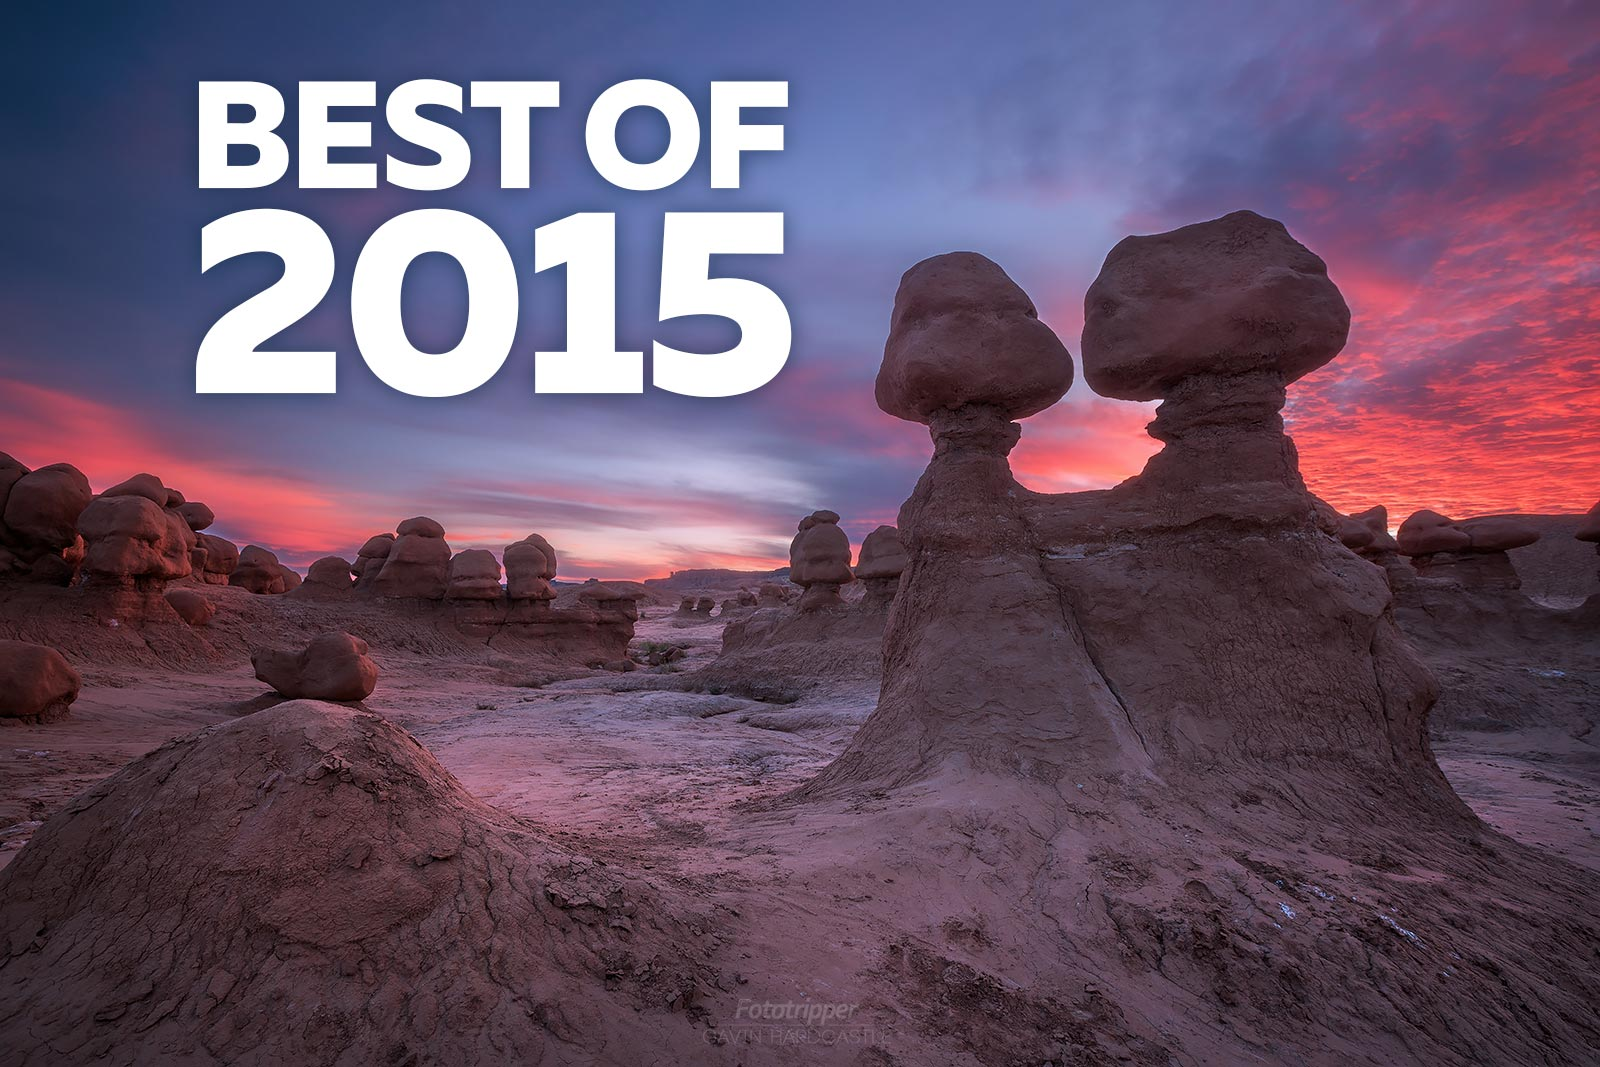 Best Landscape Photography Images of 2015